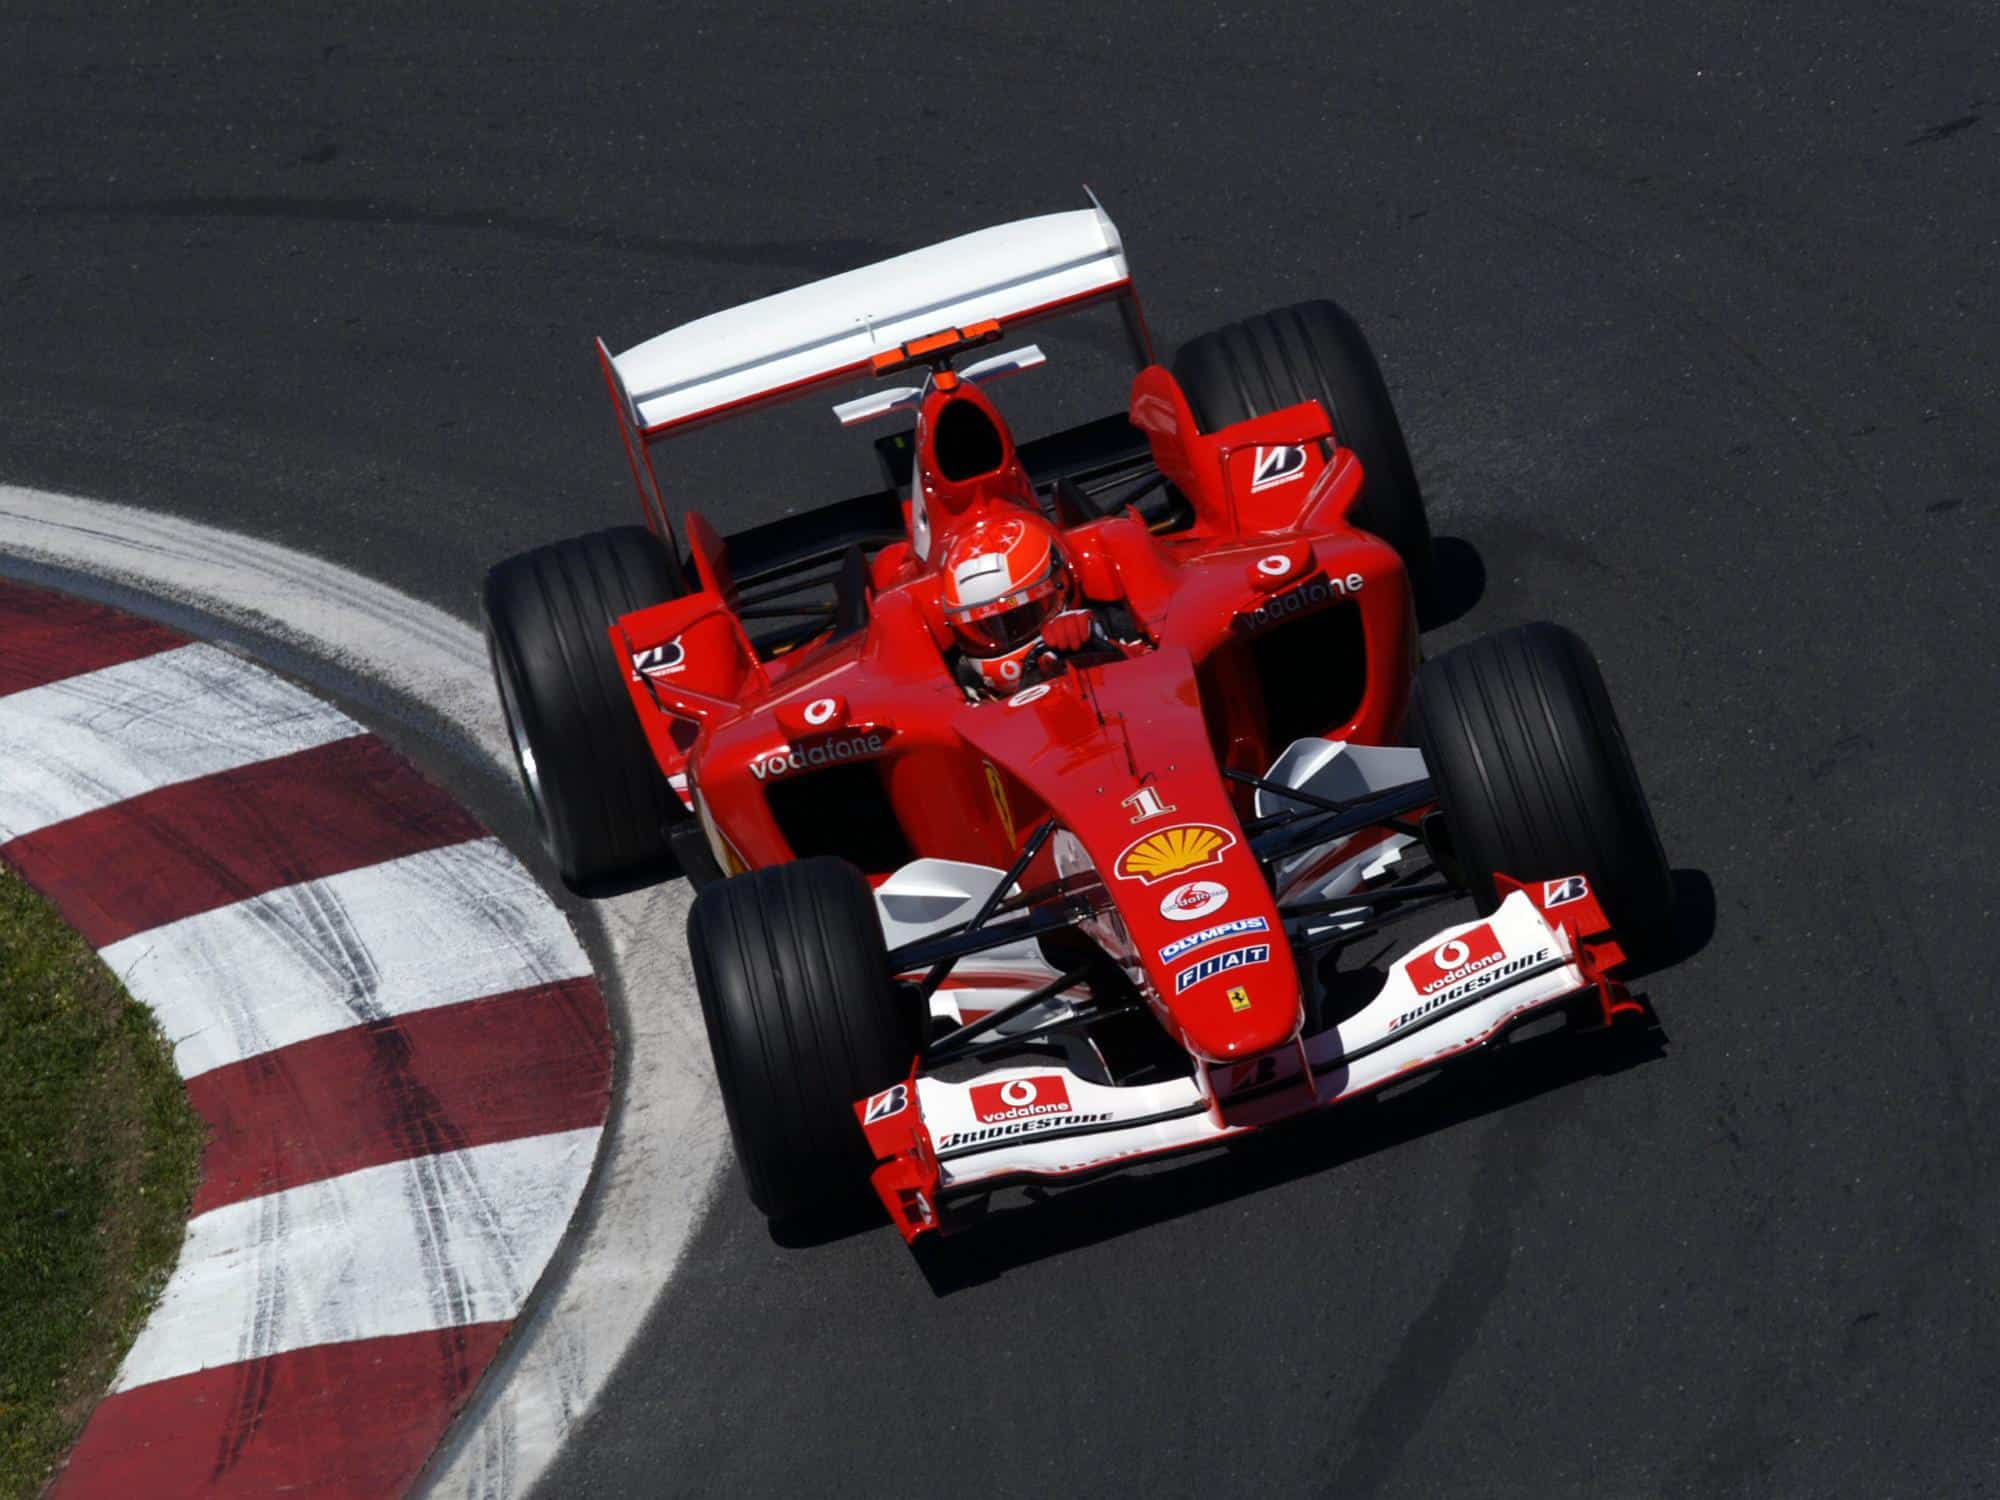 Michael-Schumacher-Ferrari-F2004-Canadian-GP-F1-2004-Photo-Ferrari